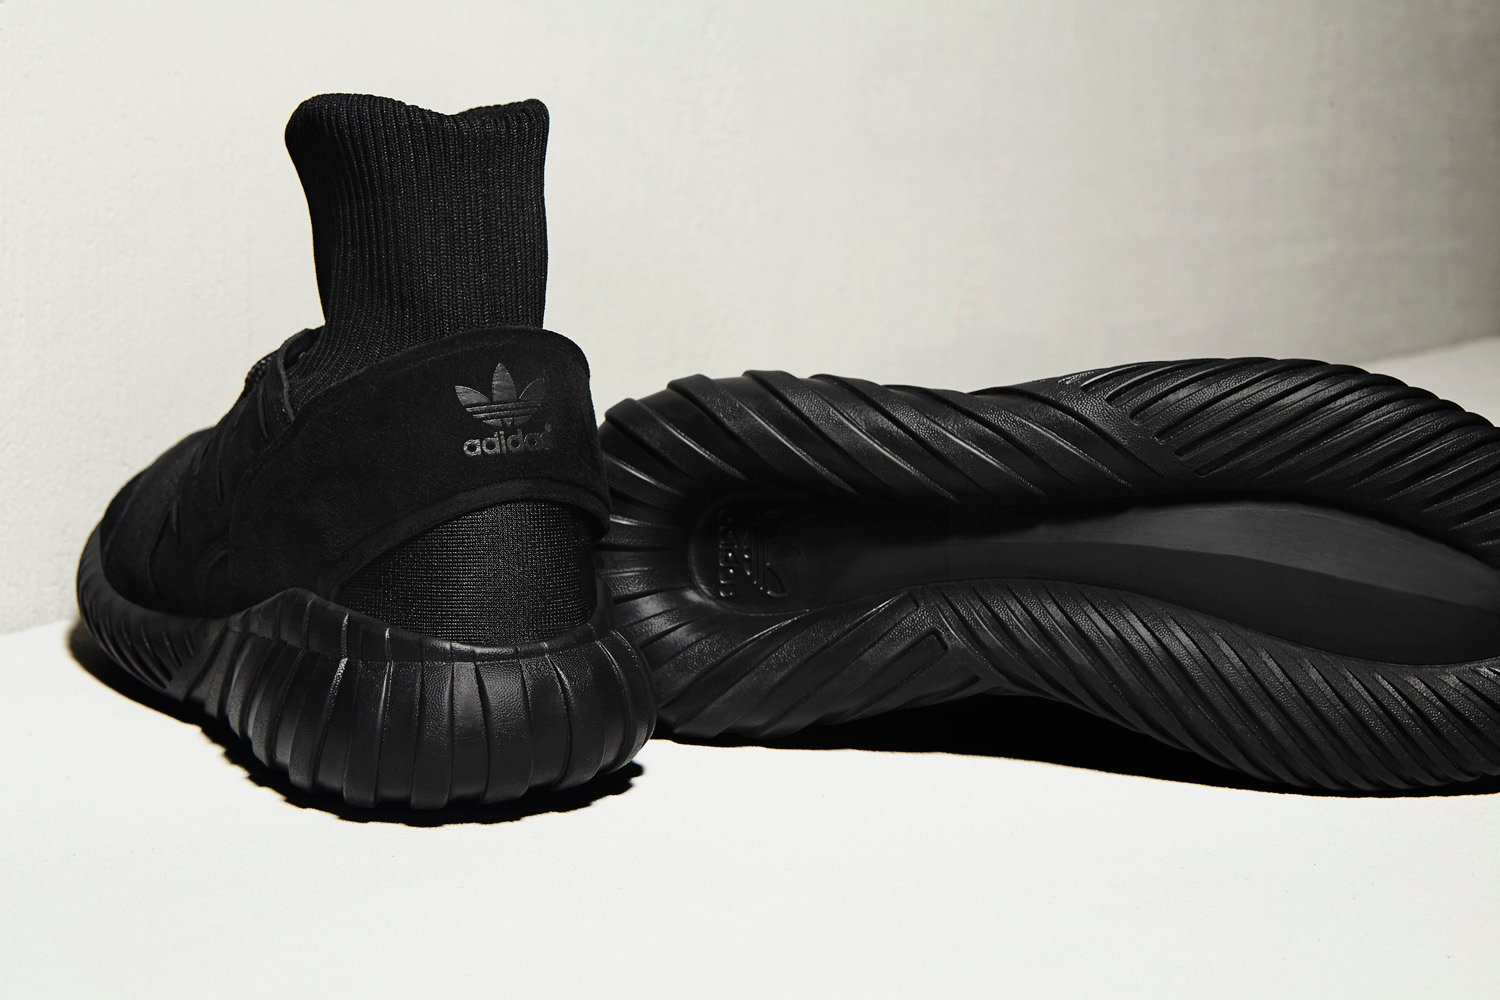 big sale e83d5 5f57d Aphrodite will be stocking the Tubular Doom in Triple Black both online and  in store from Saturday 16th April priced at £110.